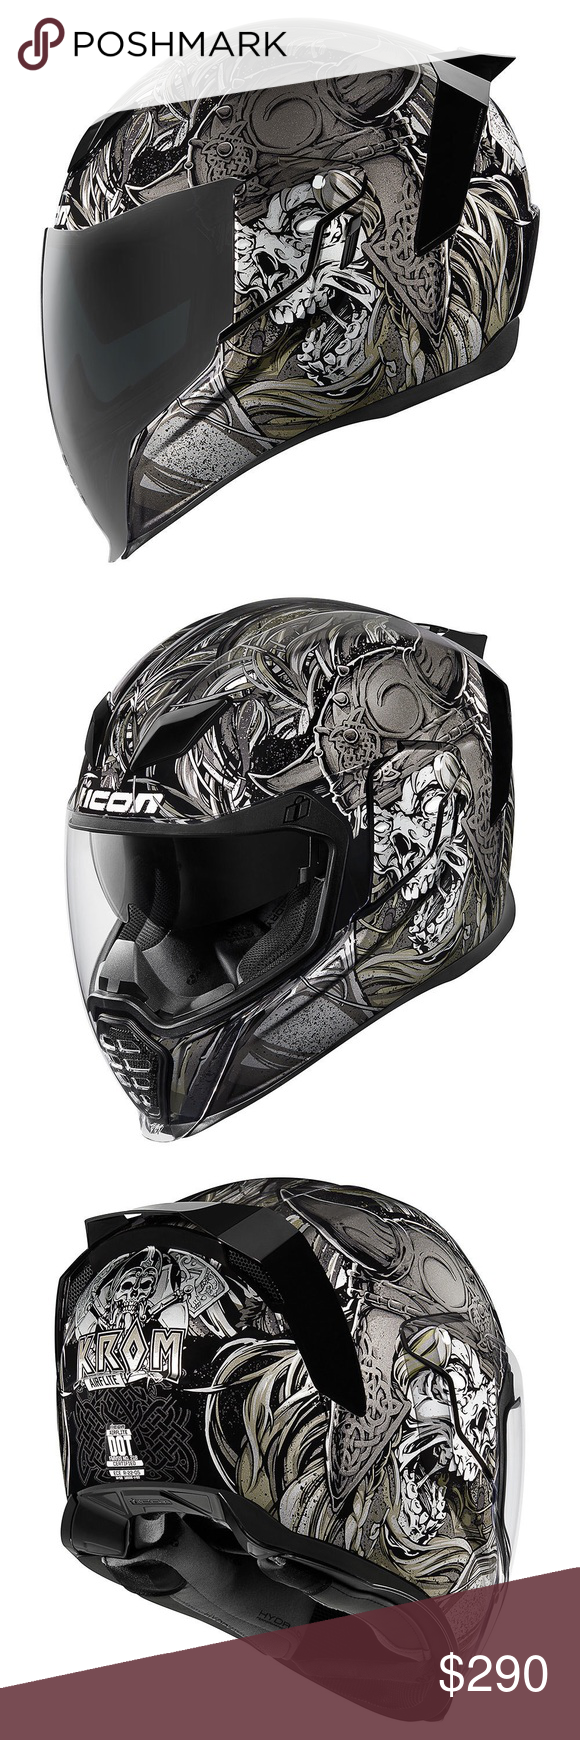 Icon Airflite Krom Motorcycle helmet new WORLD STANDARD